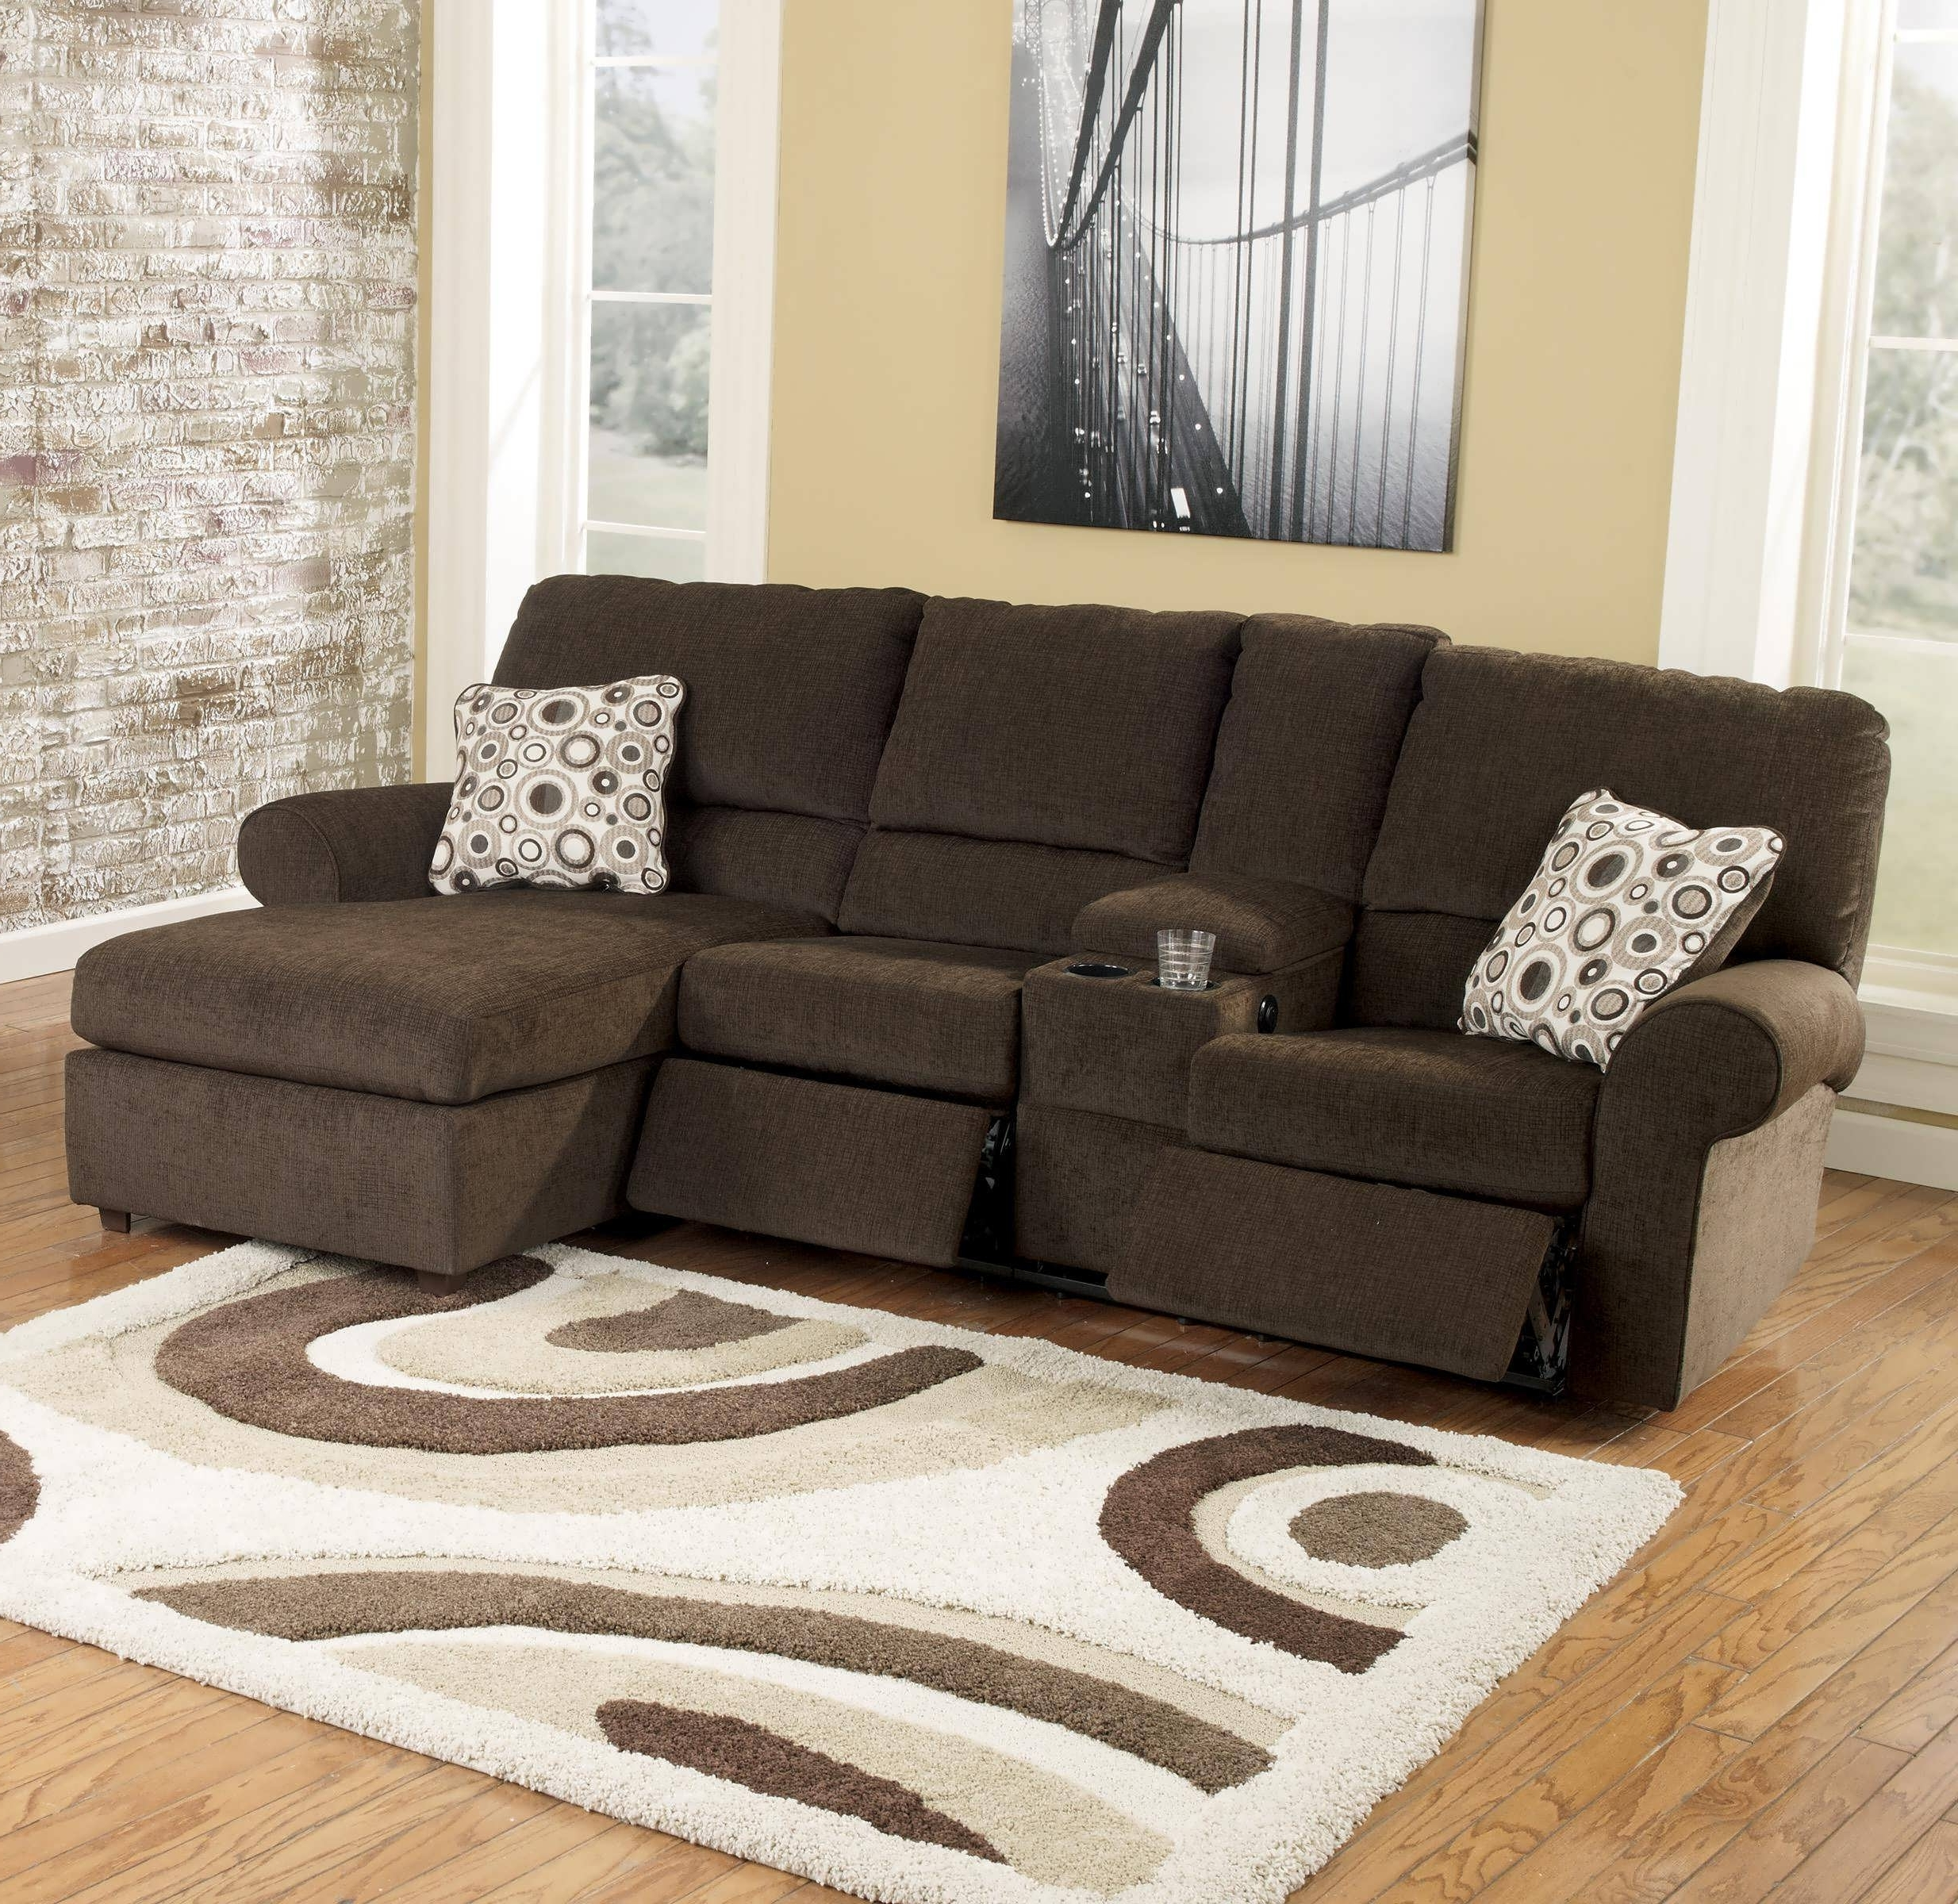 Sectionals With Chaise And Recliner Inside Widely Used Sofa : Leather Sectional Couch Double Chaise Sectional Leather L (View 4 of 15)